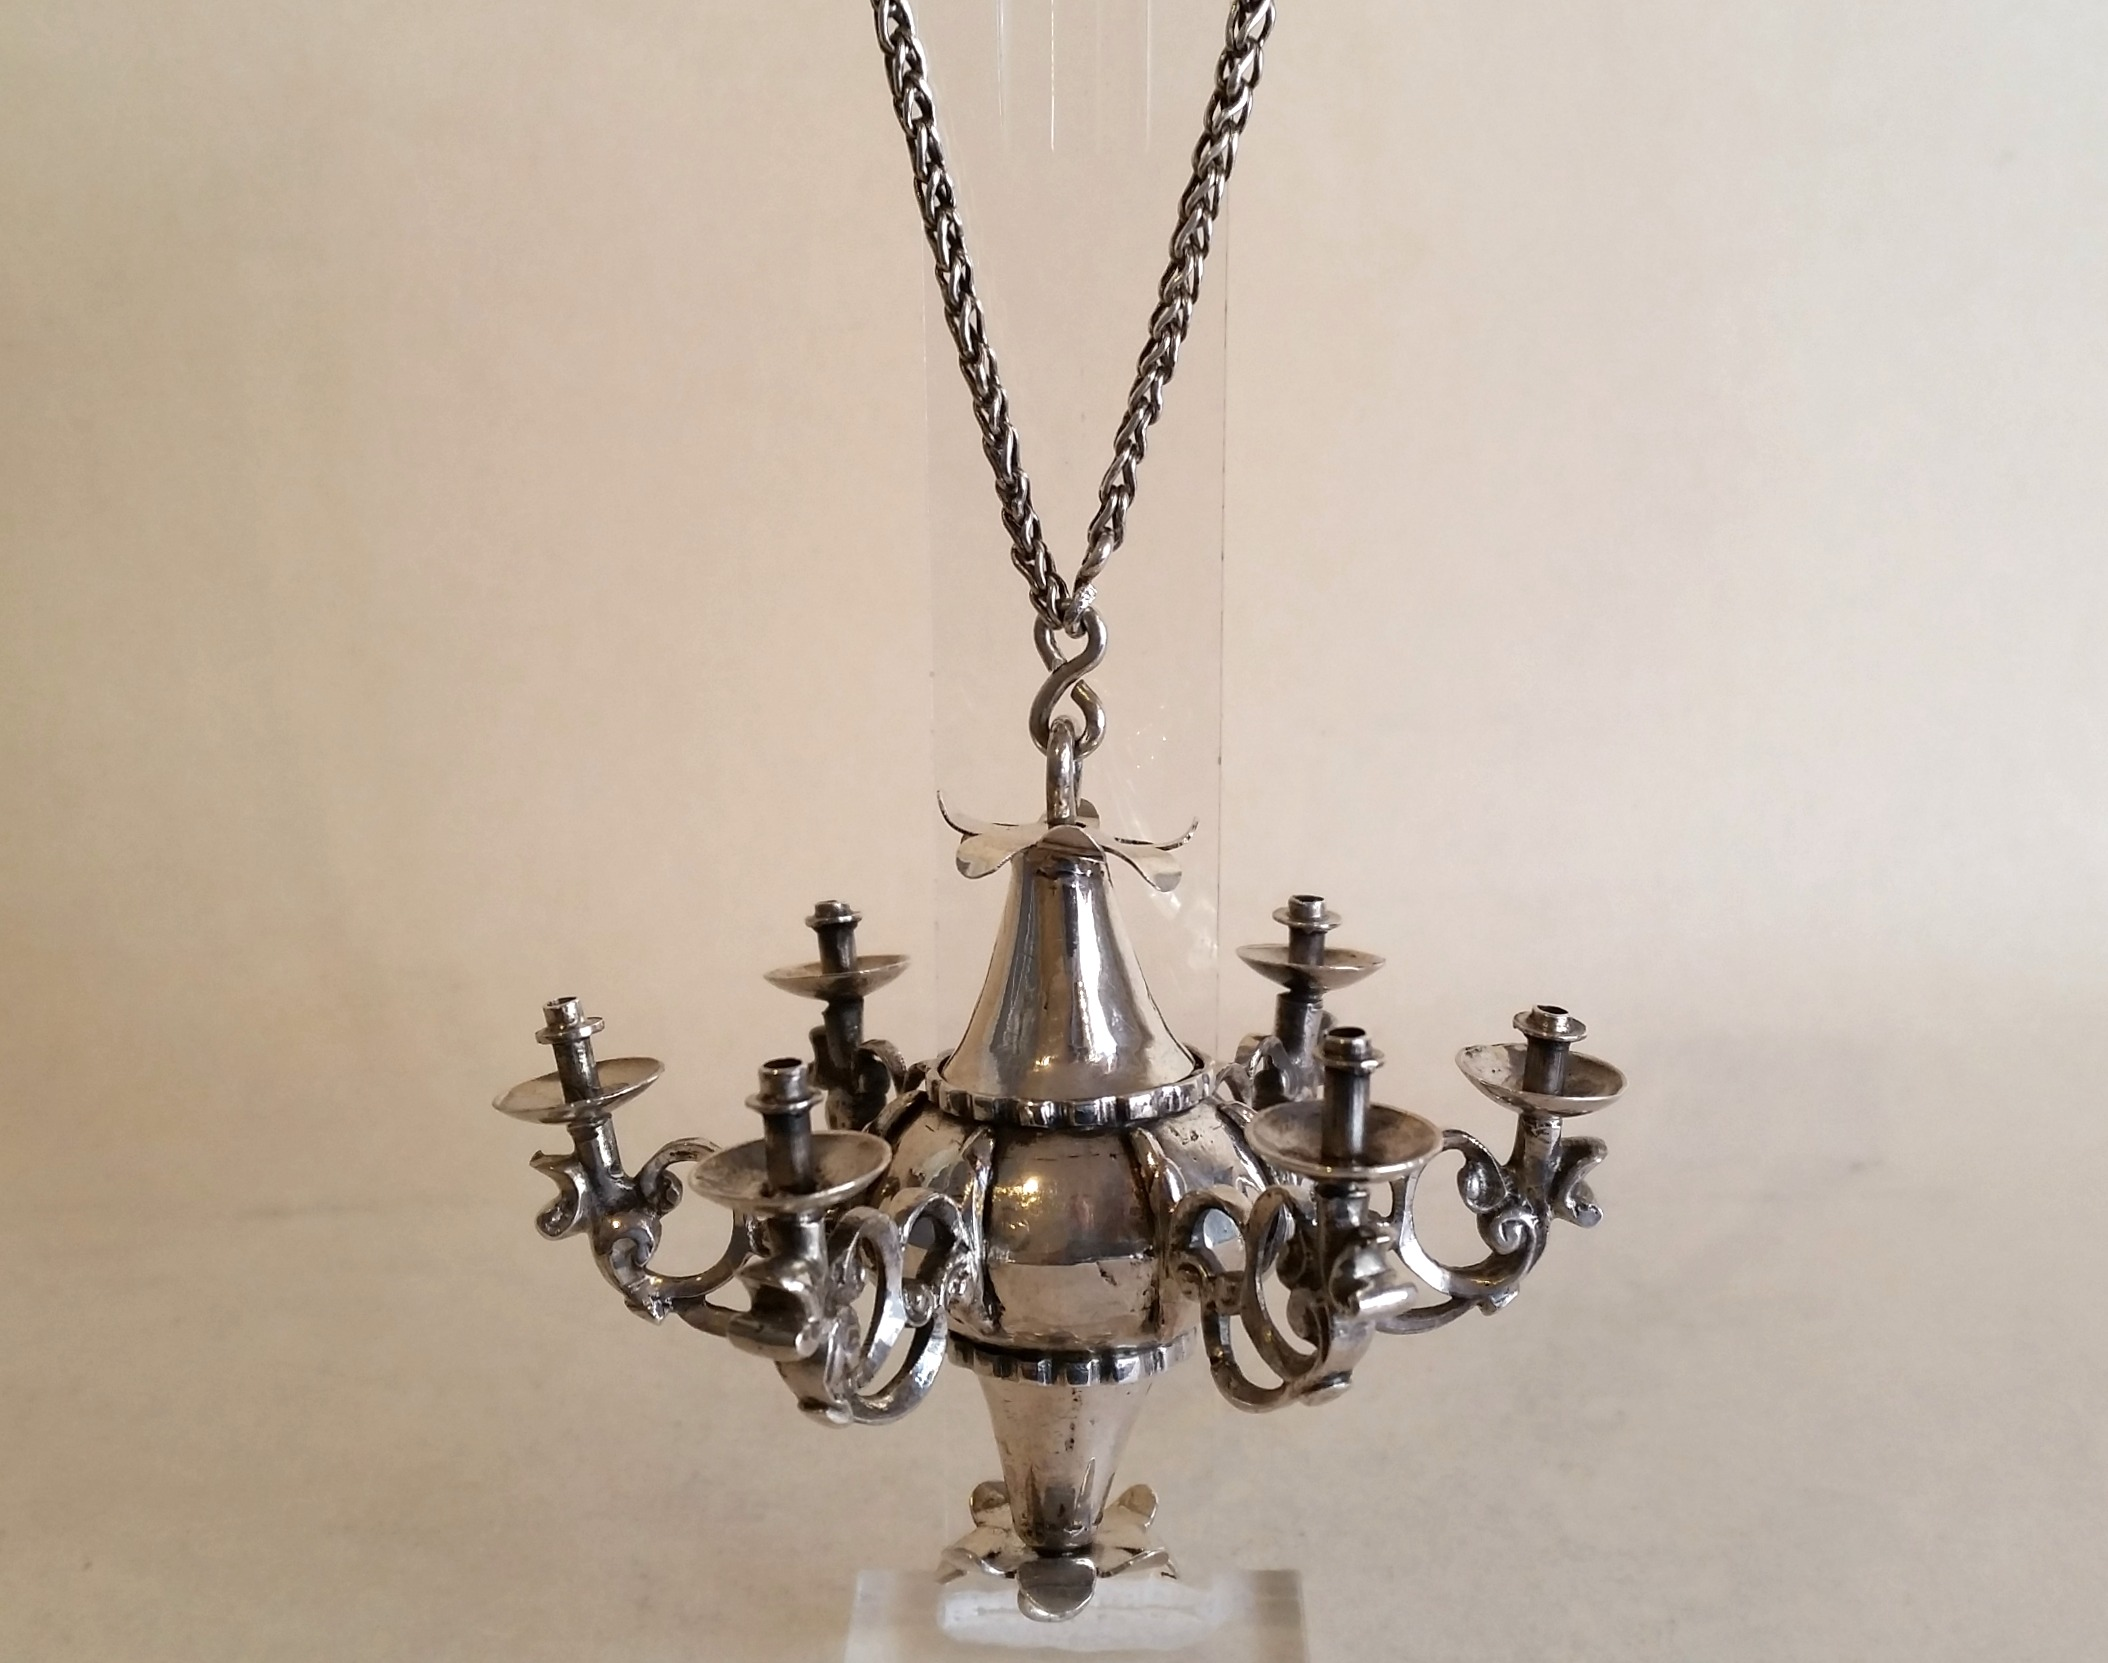 bulbs electric elite miniature melody arm dolls light brass candle house chandelier